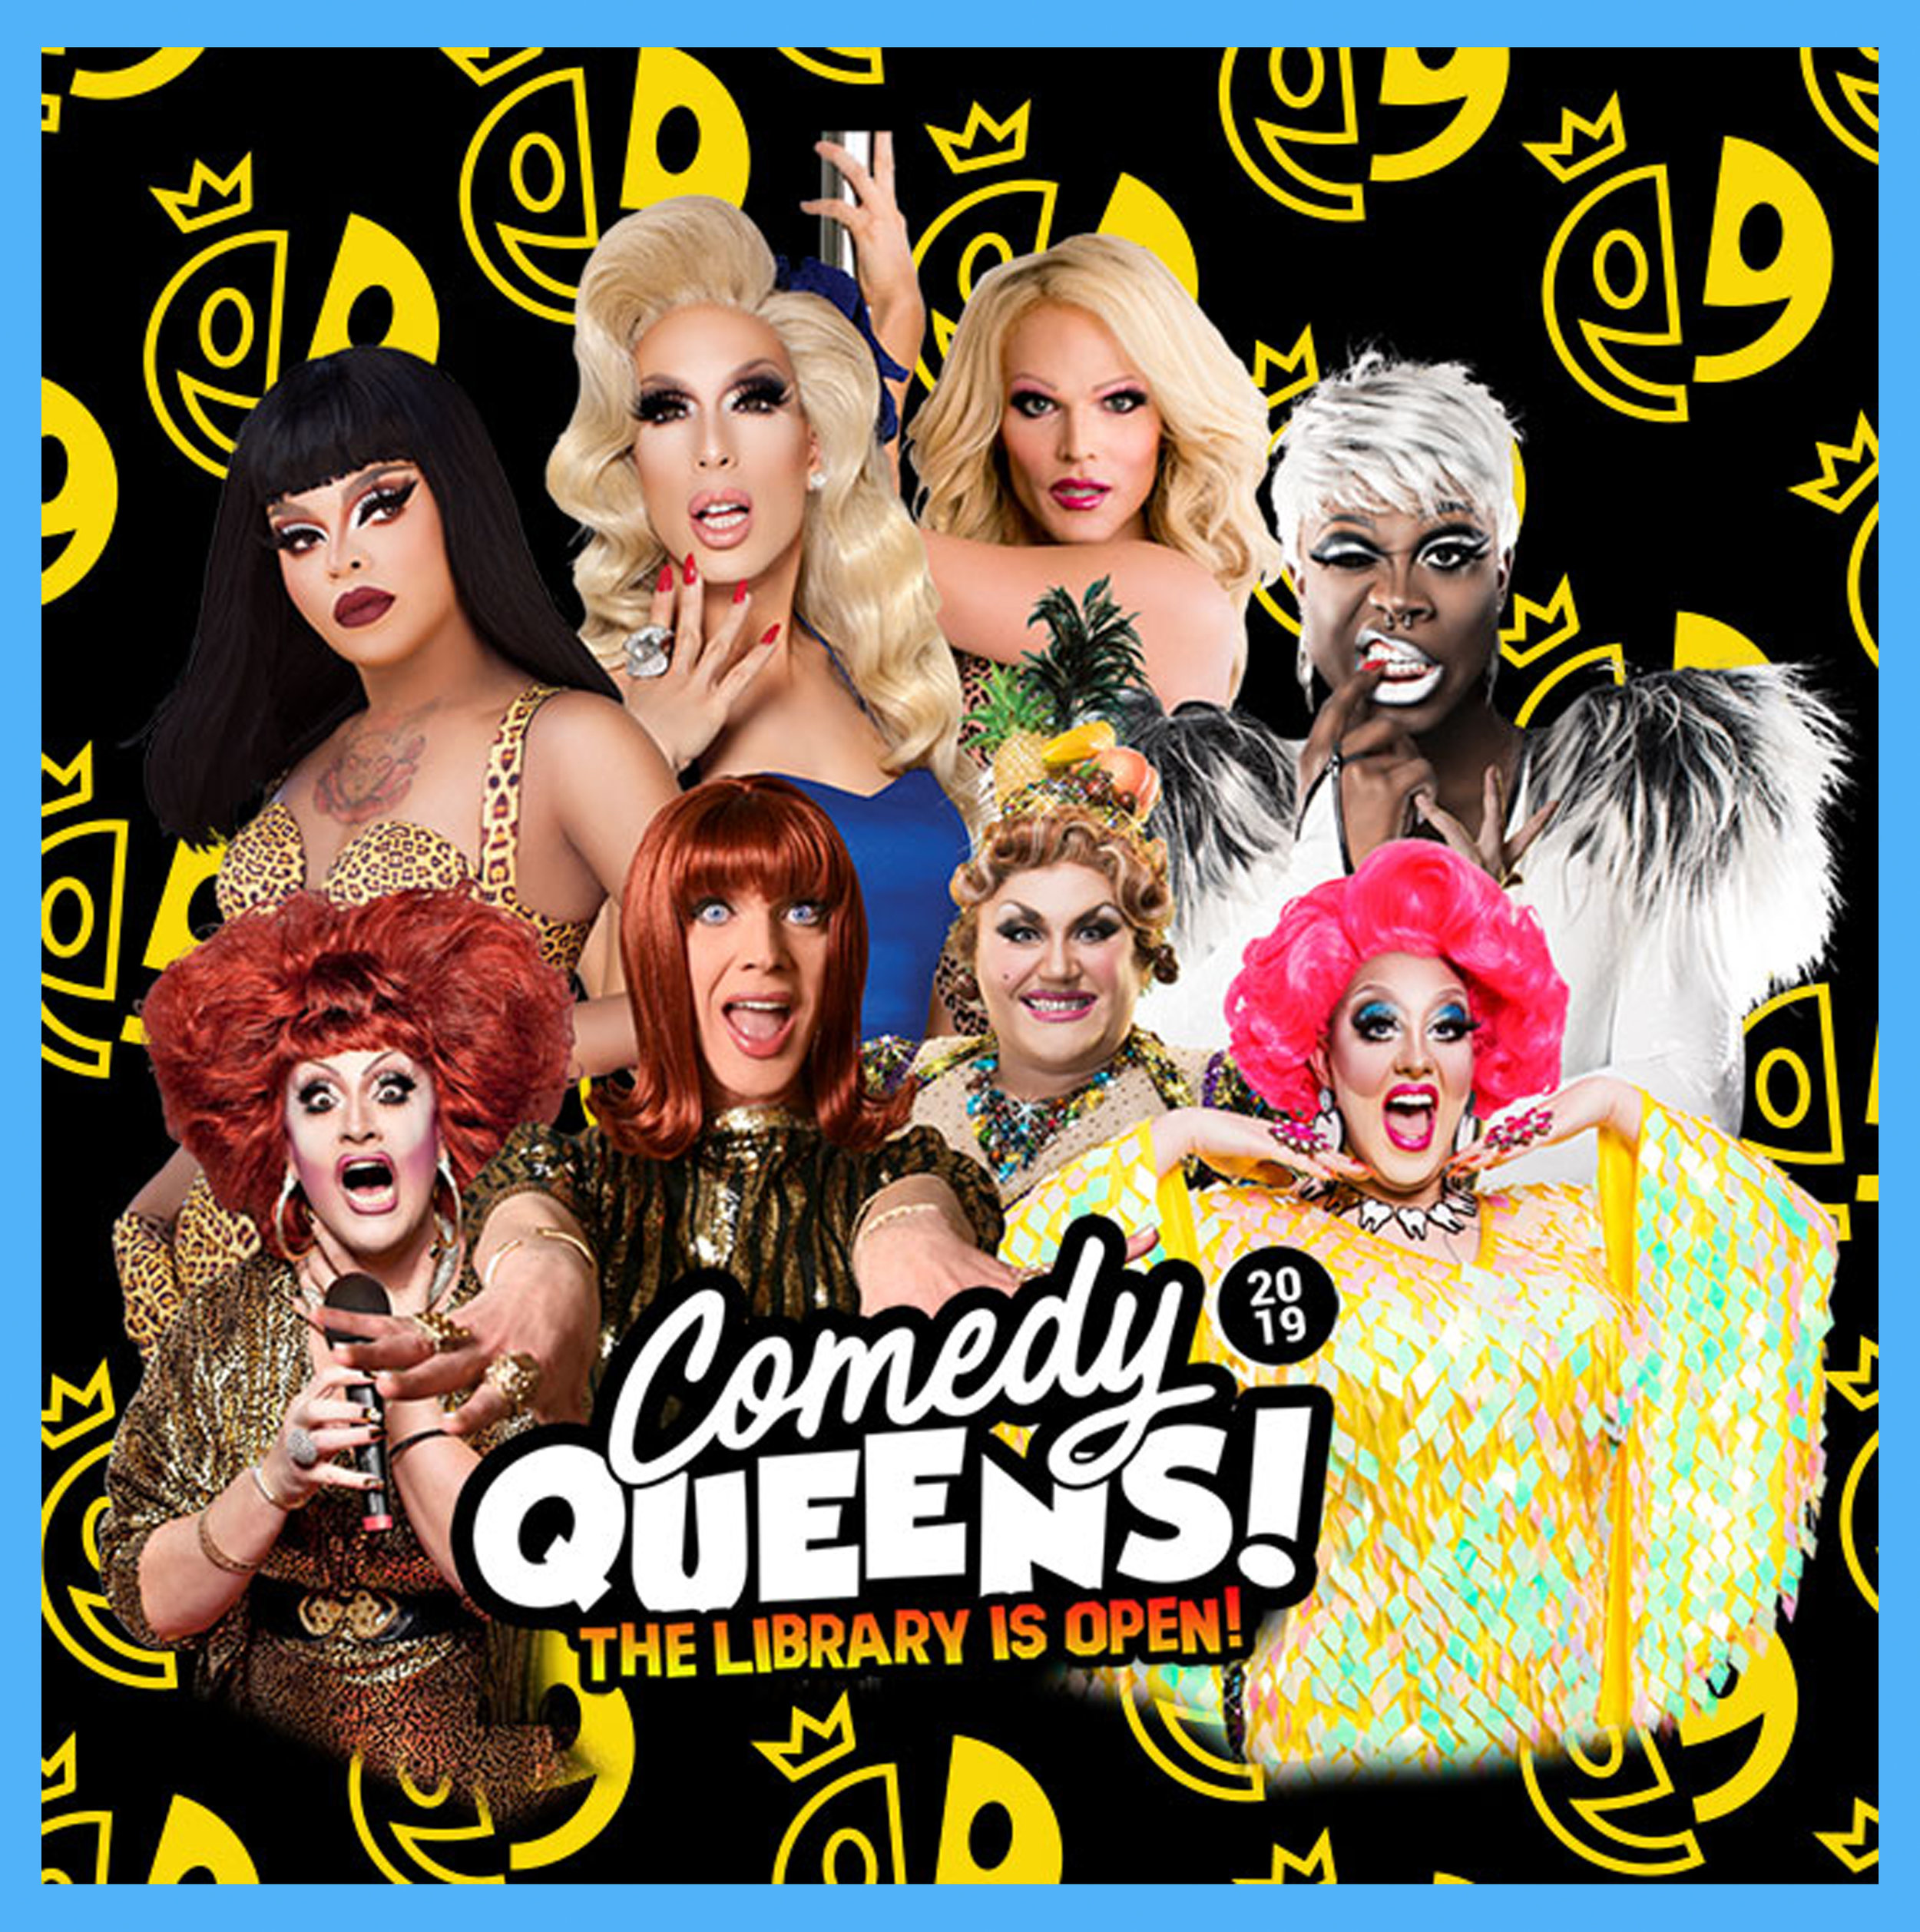 SYDNEY, AU - August 24th, 2019, 7:00PMYou loved laughing your face off this year, now get ready to do it all again in 2019! We'll be bringing you more laughs than you can handle with this international cast of comedy queens. We've got your favourites from Youtube, Drag Race and this year, we're adding some local talent in to the mix.